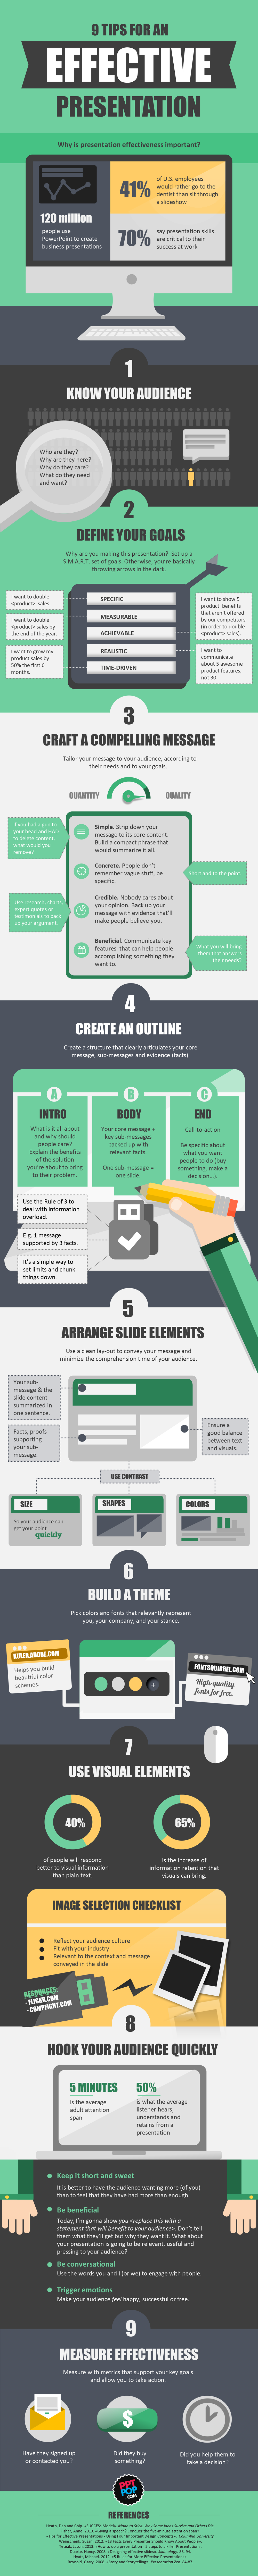 the best powerpoint presentation (infographic) - the muse, Powerpoint templates